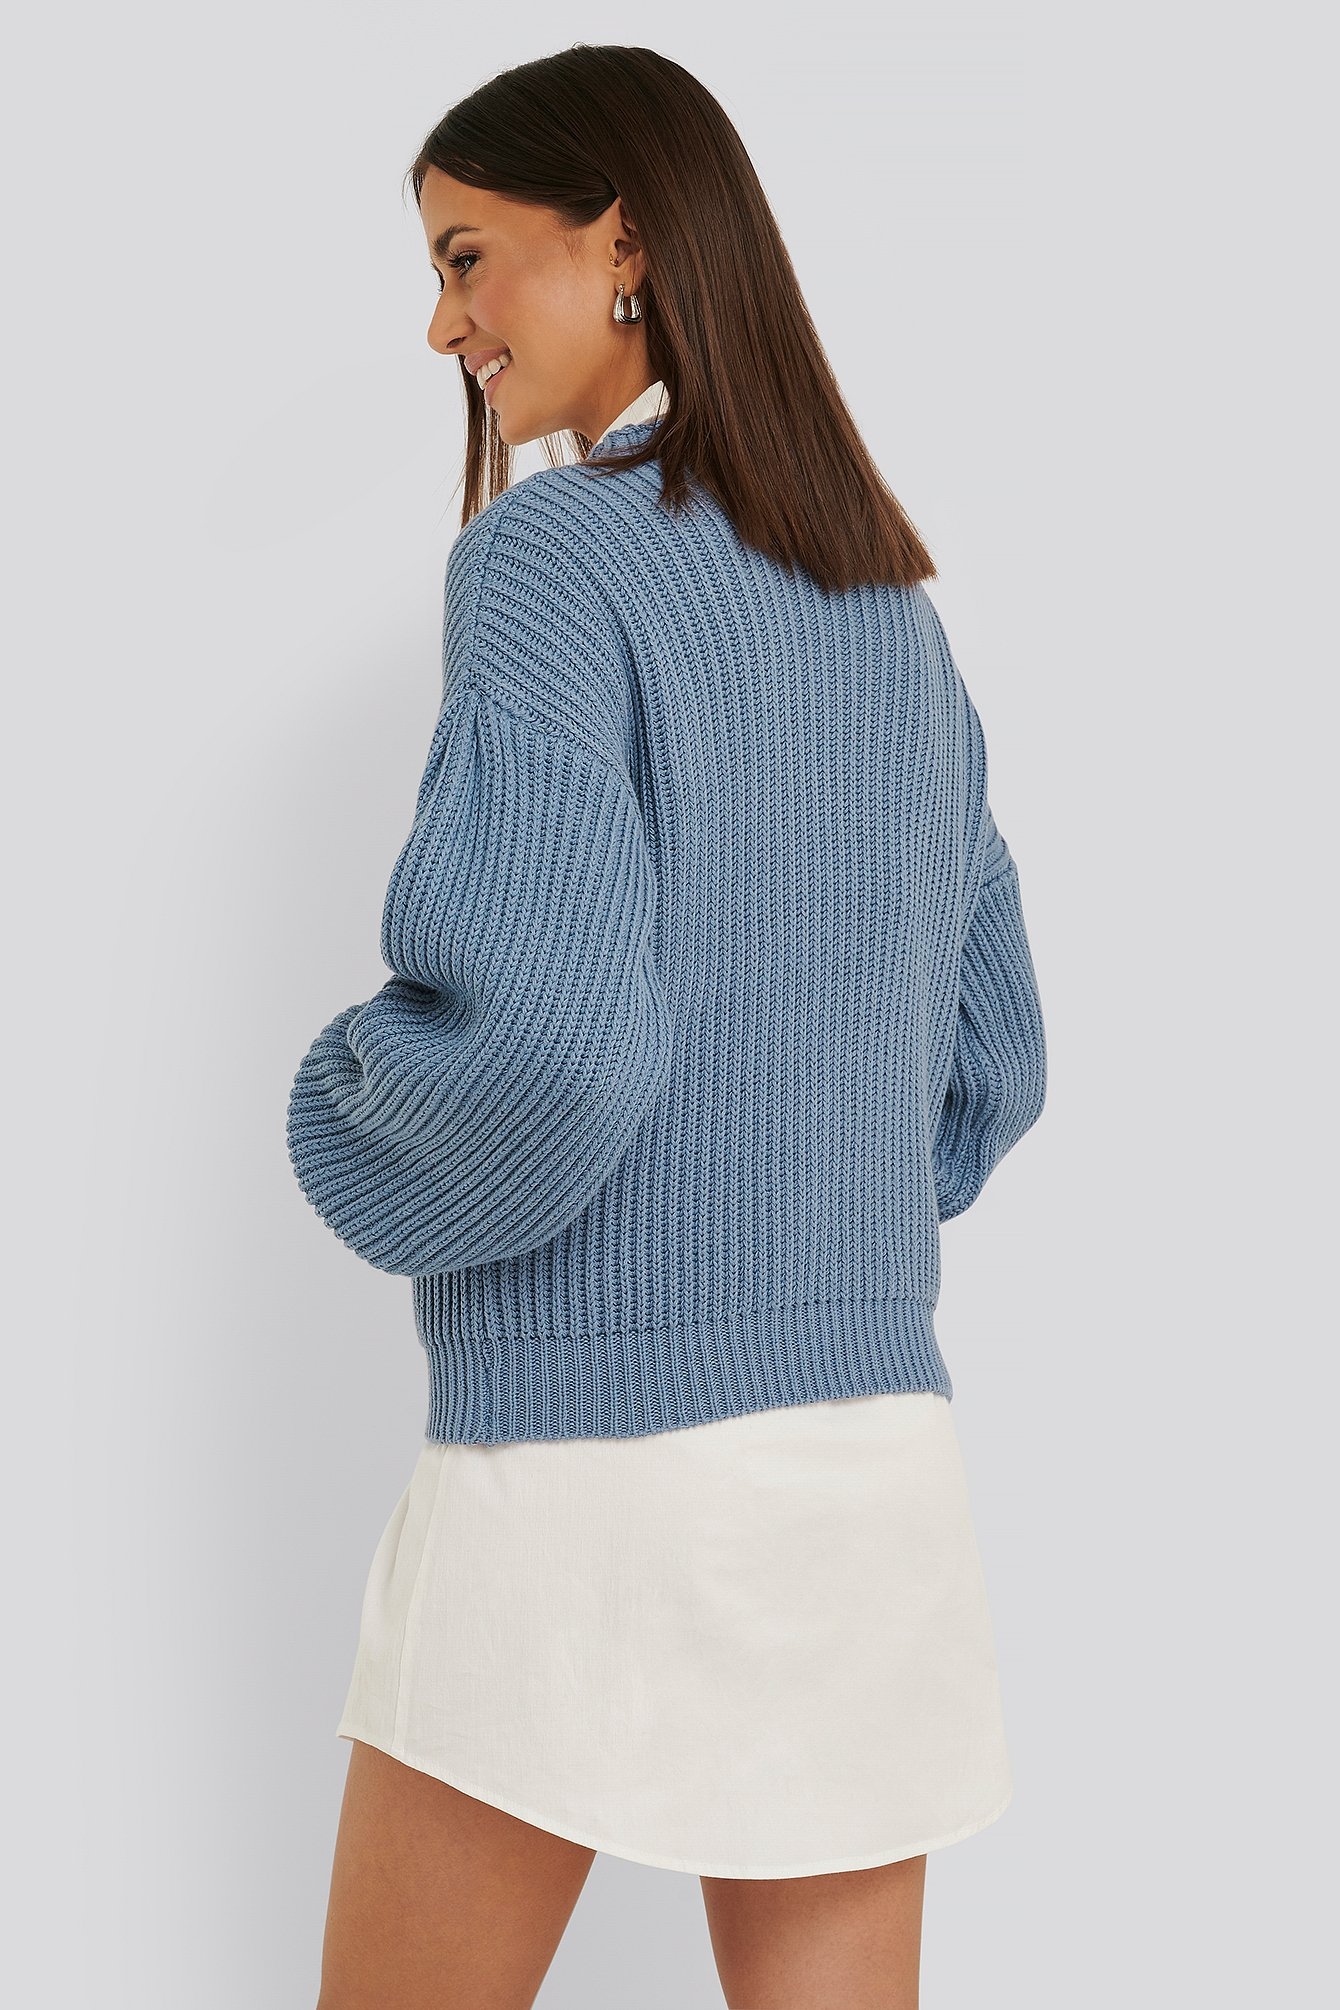 Stone Blue Balloon Sleeve Knitted Sweater TEST